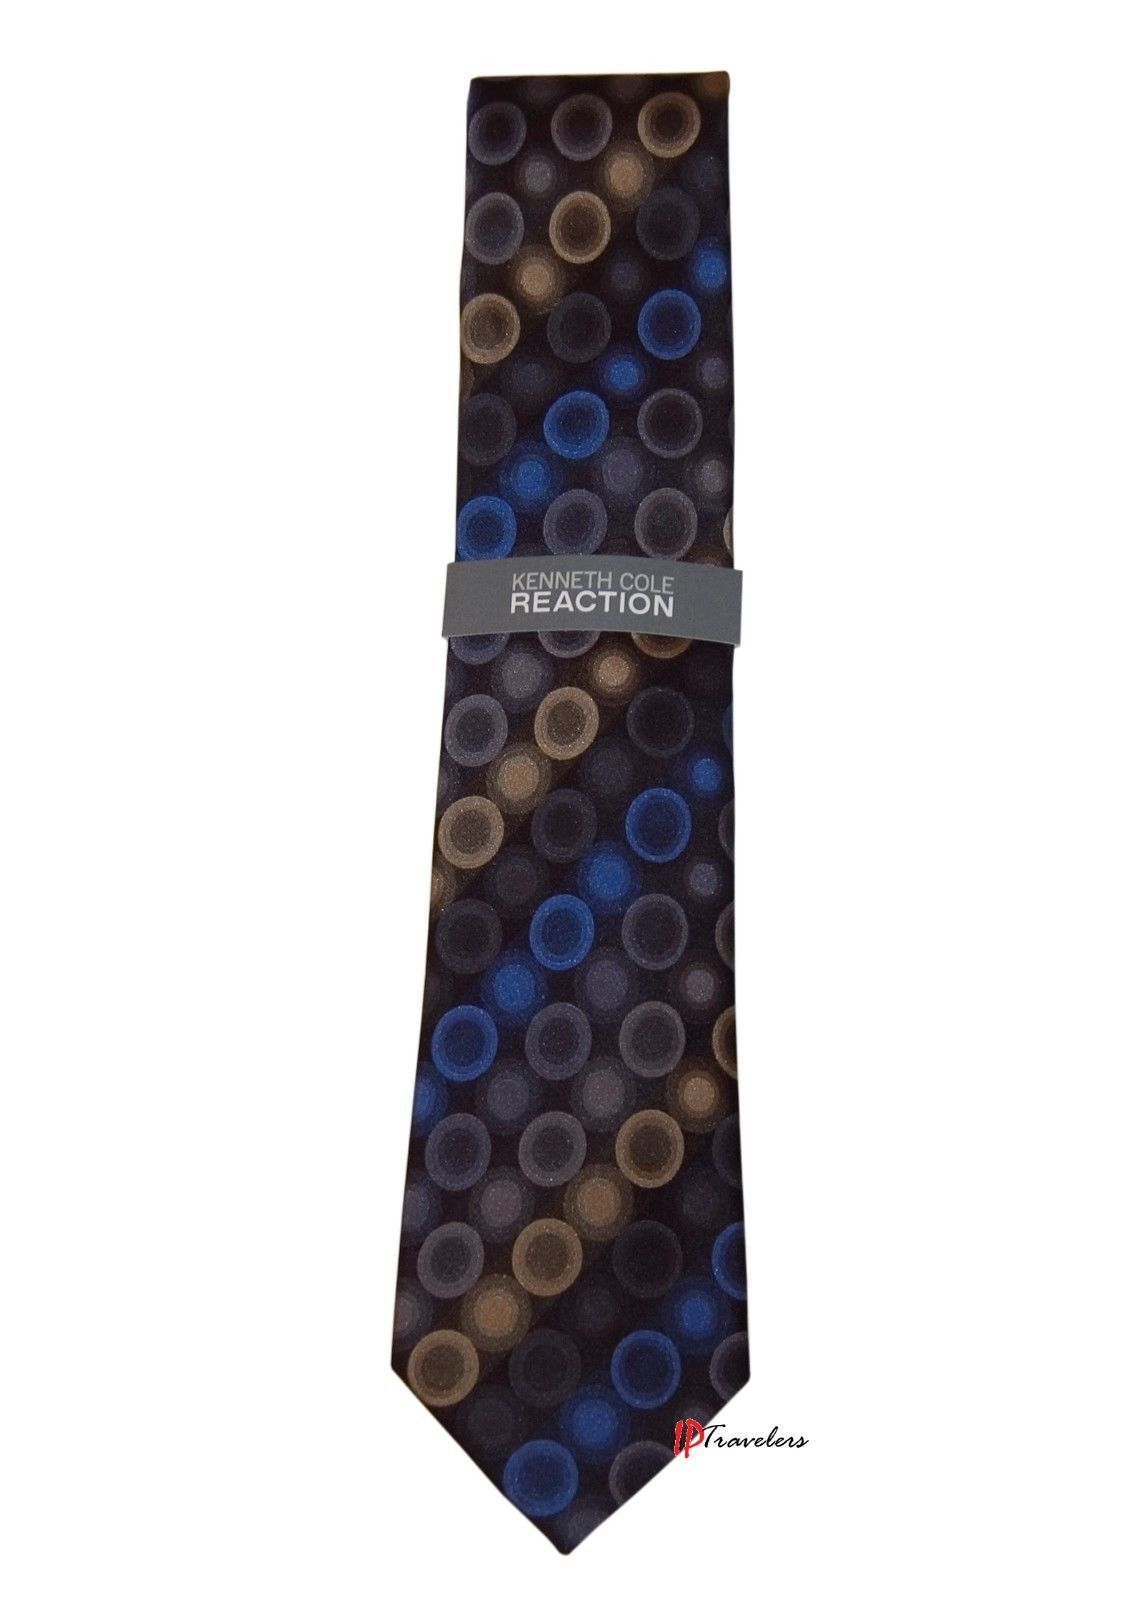 Kenneth Cole Reaction Men's Neck Tie Black with Blue Yellow Dots 100% Silk $55